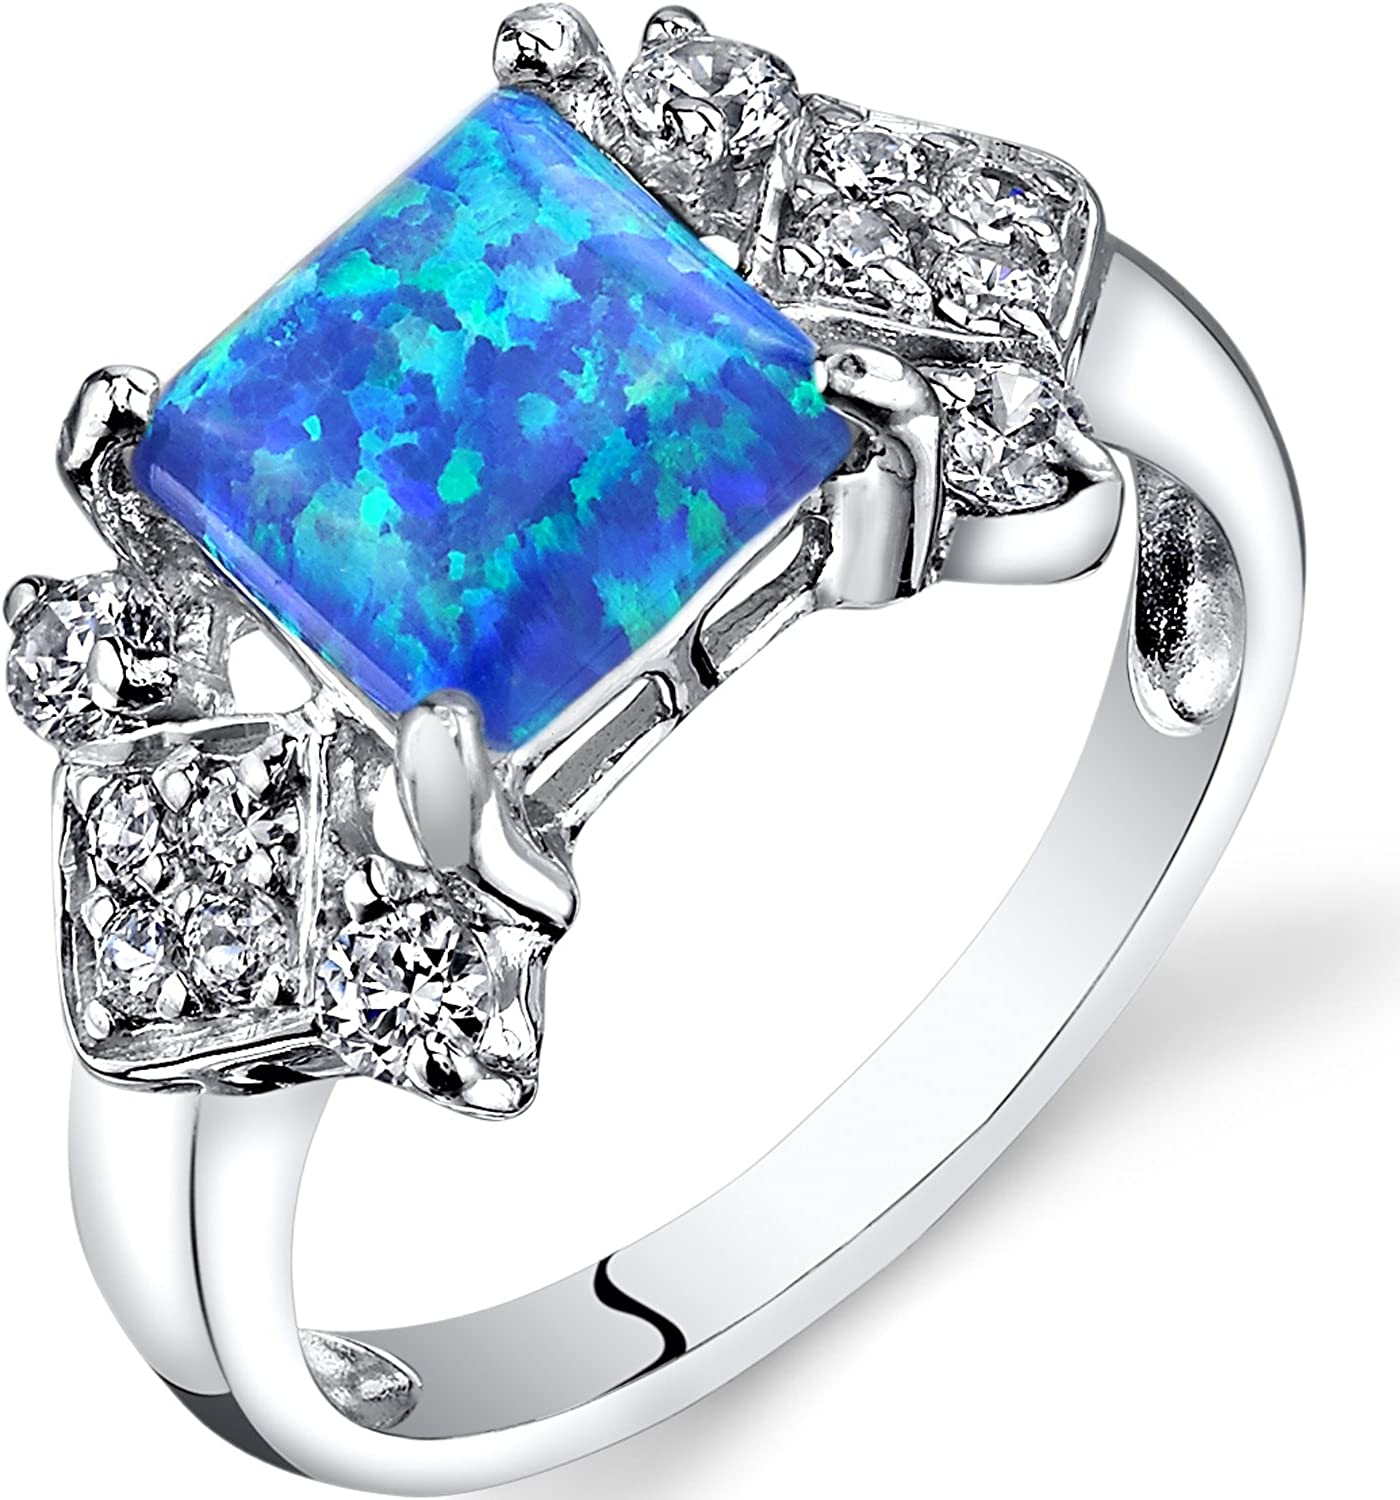 Created Blue Opal Majeste Ring Sterling Silver Princess Cut 1.00 Carats Sizes 5 to 9